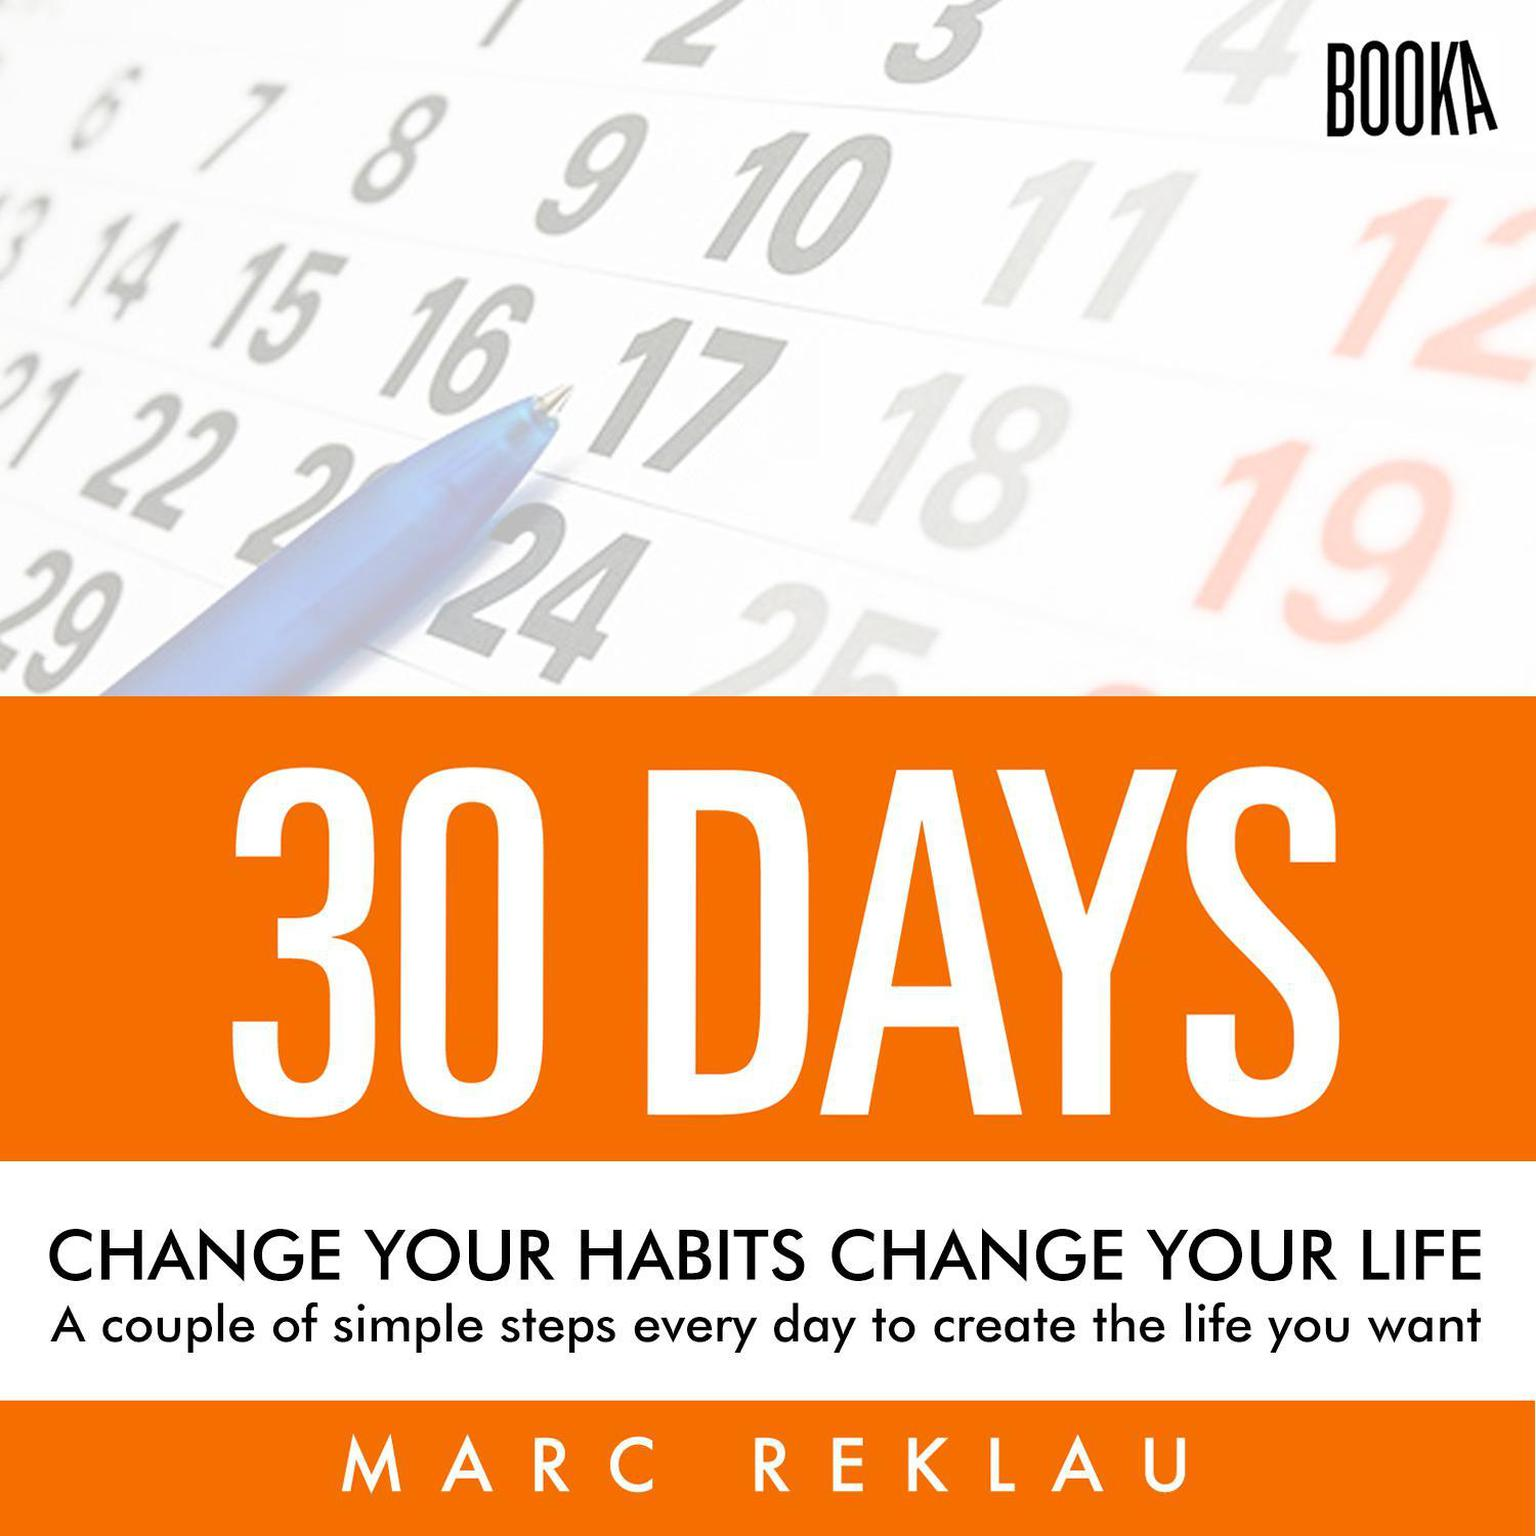 30 Days - Change your habits, Change your life: A couple of simple steps every day to create the life you want Audiobook, by Marc Reklau